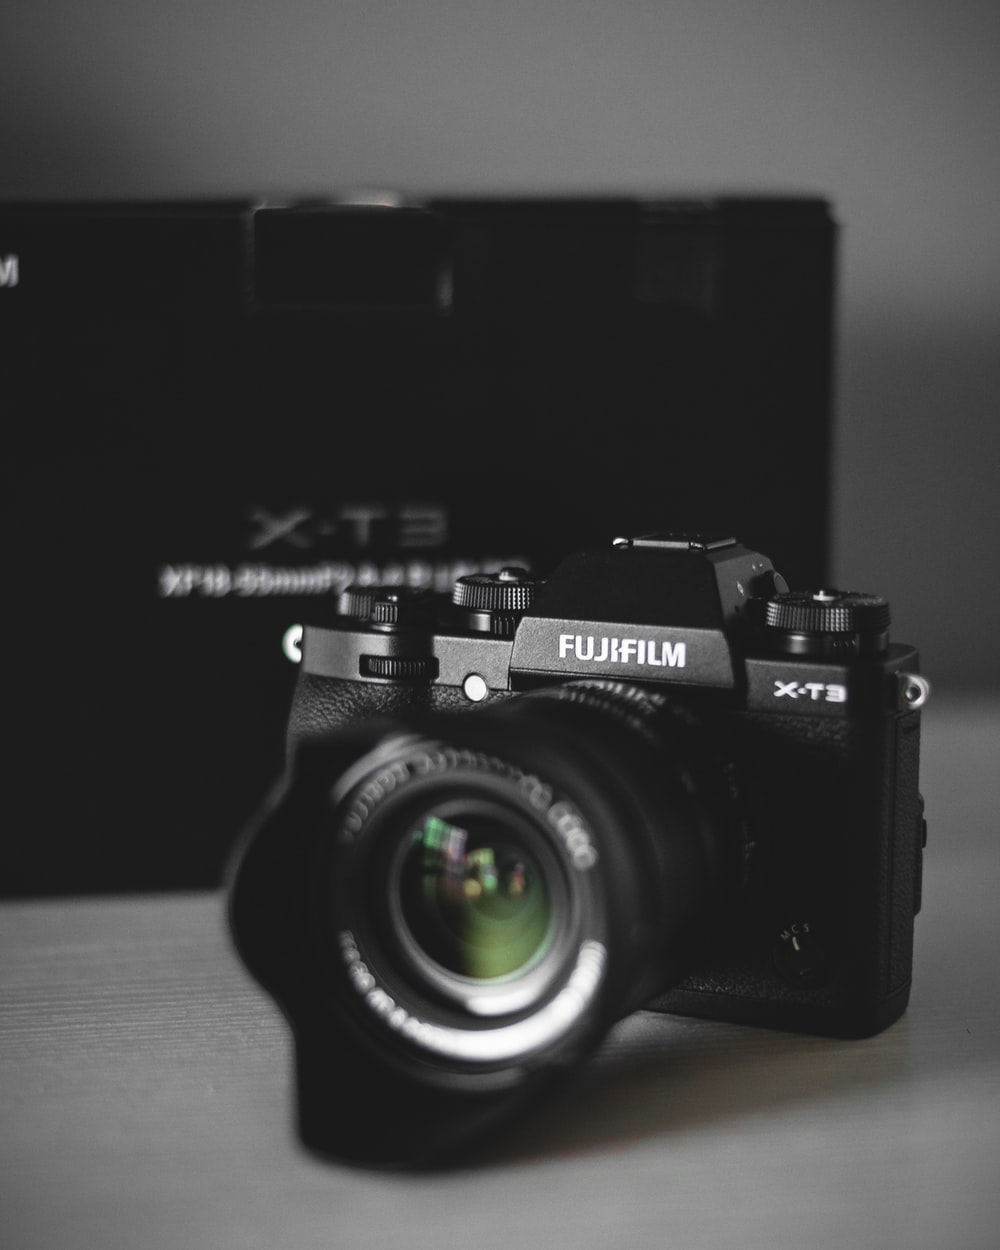 Fujifilm Xt3 Pictures | Download Free Images on Unsplash